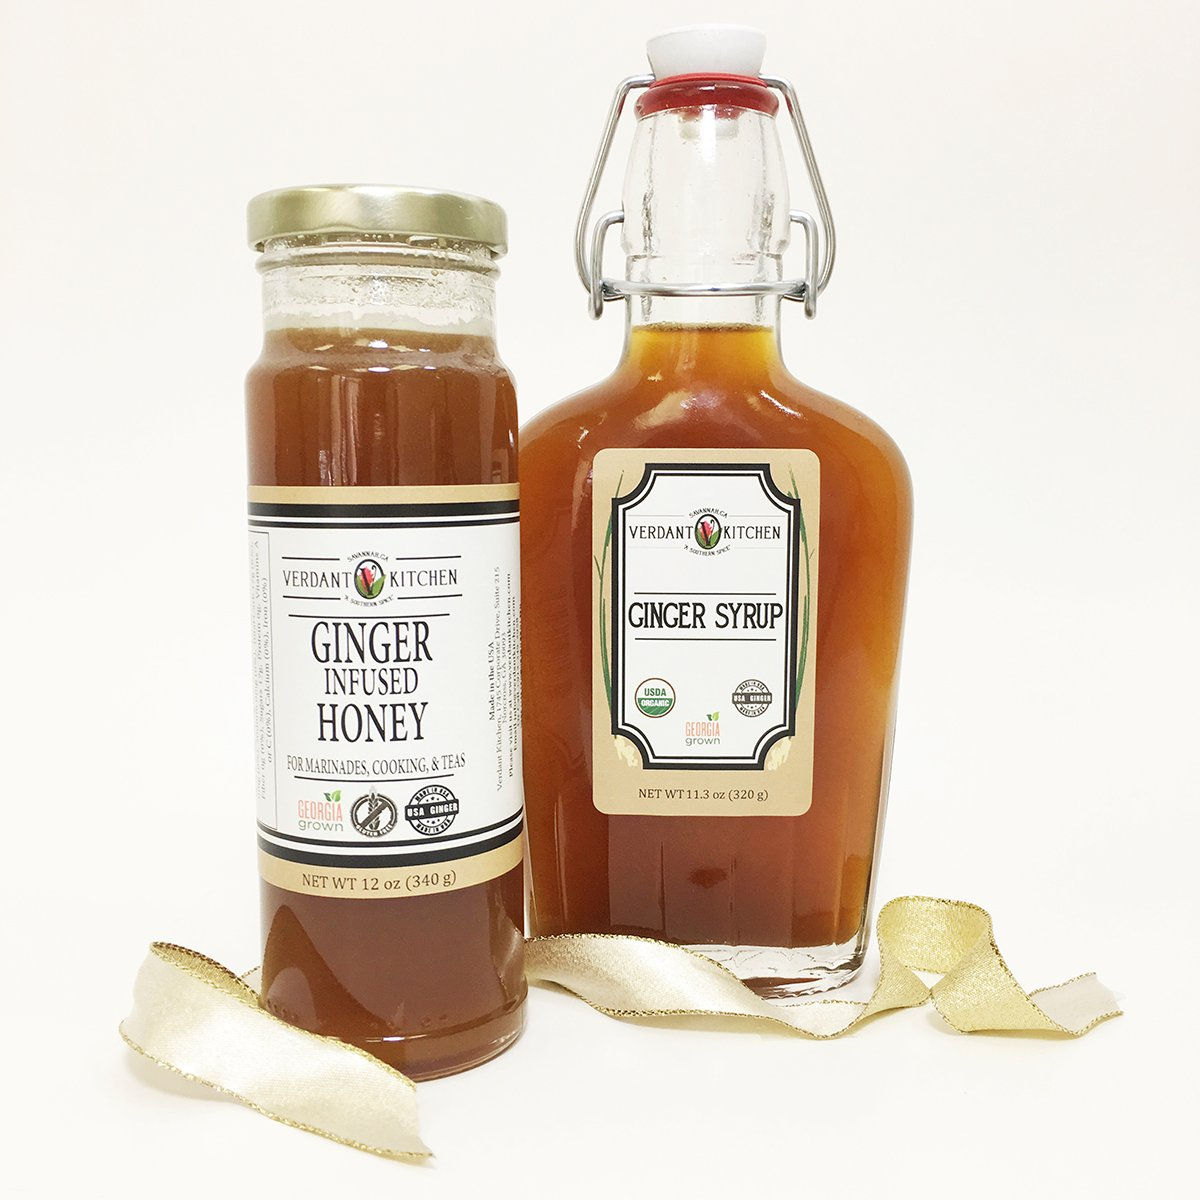 Ginger Syrup and Ginger Infused Honey Gift Set - Oprah's Favorite Things